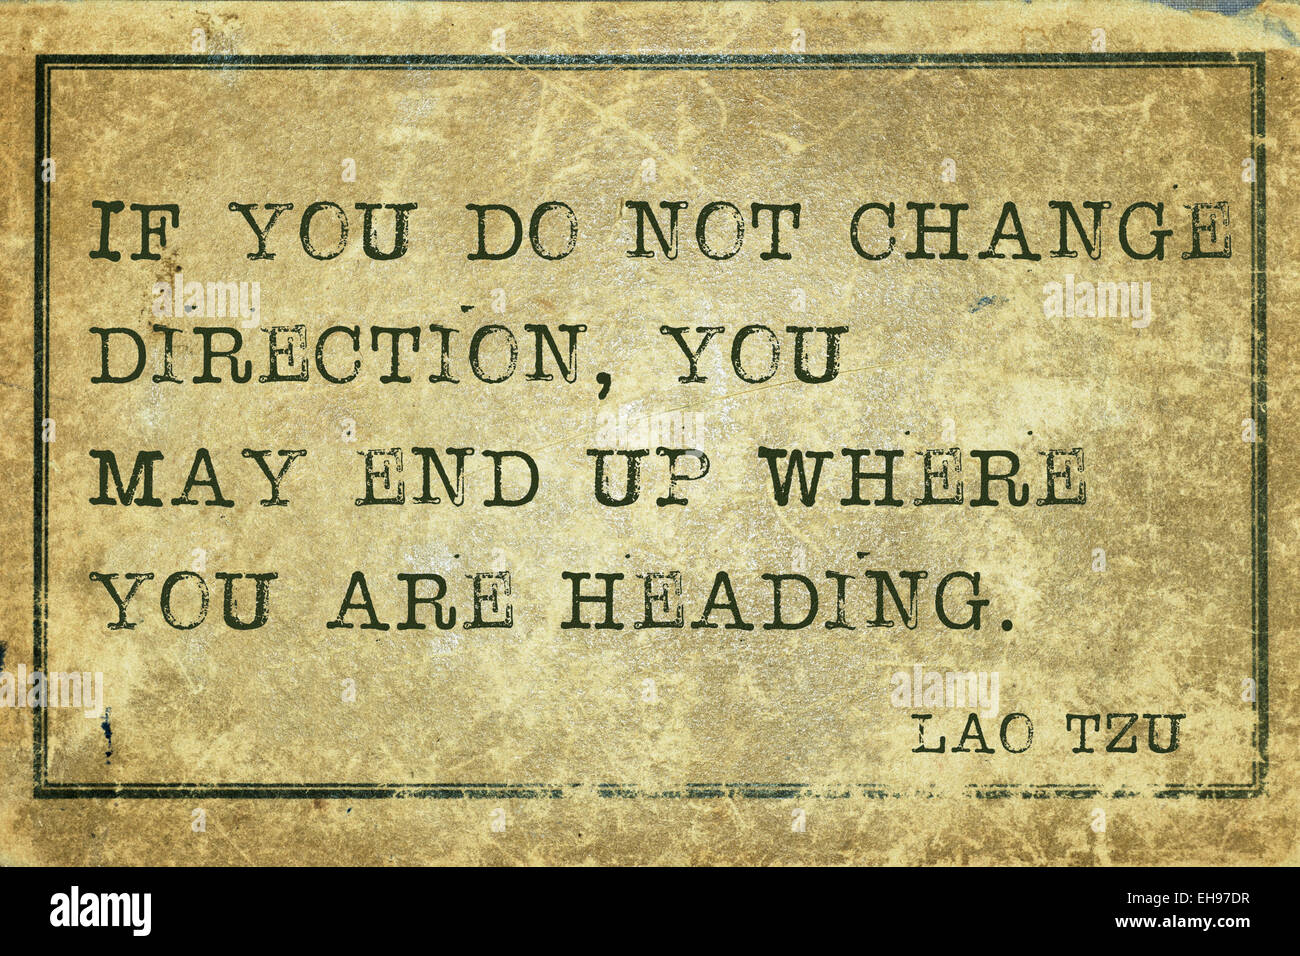 If you do not change direction - ancient Chinese philosopher Lao Tzu quote printed on grunge vintage cardboard - Stock Image